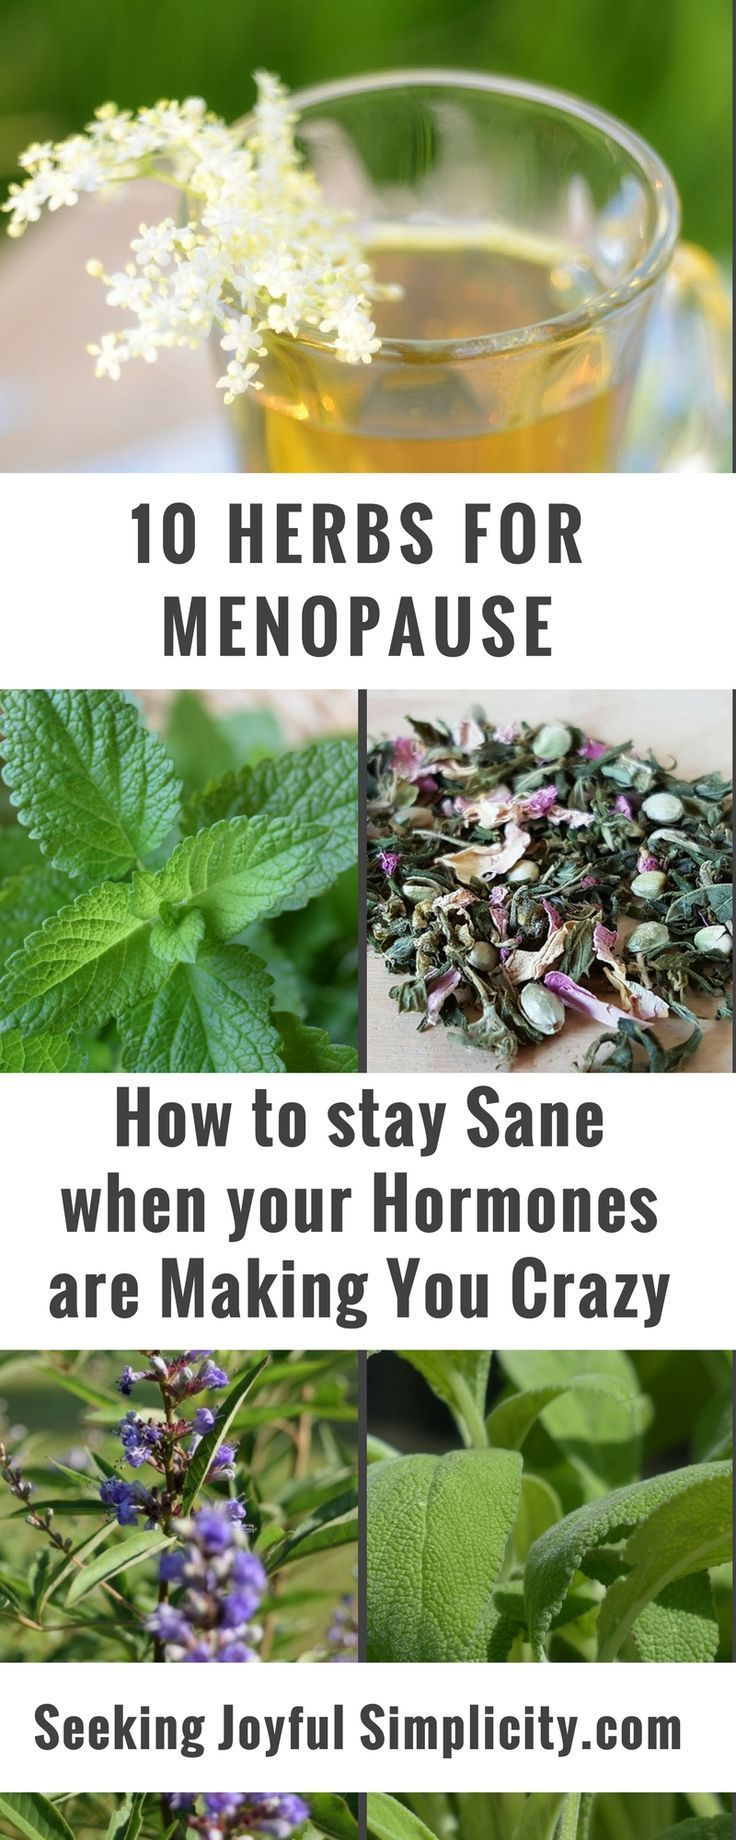 The best herbs for menopause - how to stay sane when your hormones are making you crazy. Herbs for menopause have a long history of use in supporting women's health and they can offer us relief, bring balance, and support deep healing. Check out these 10